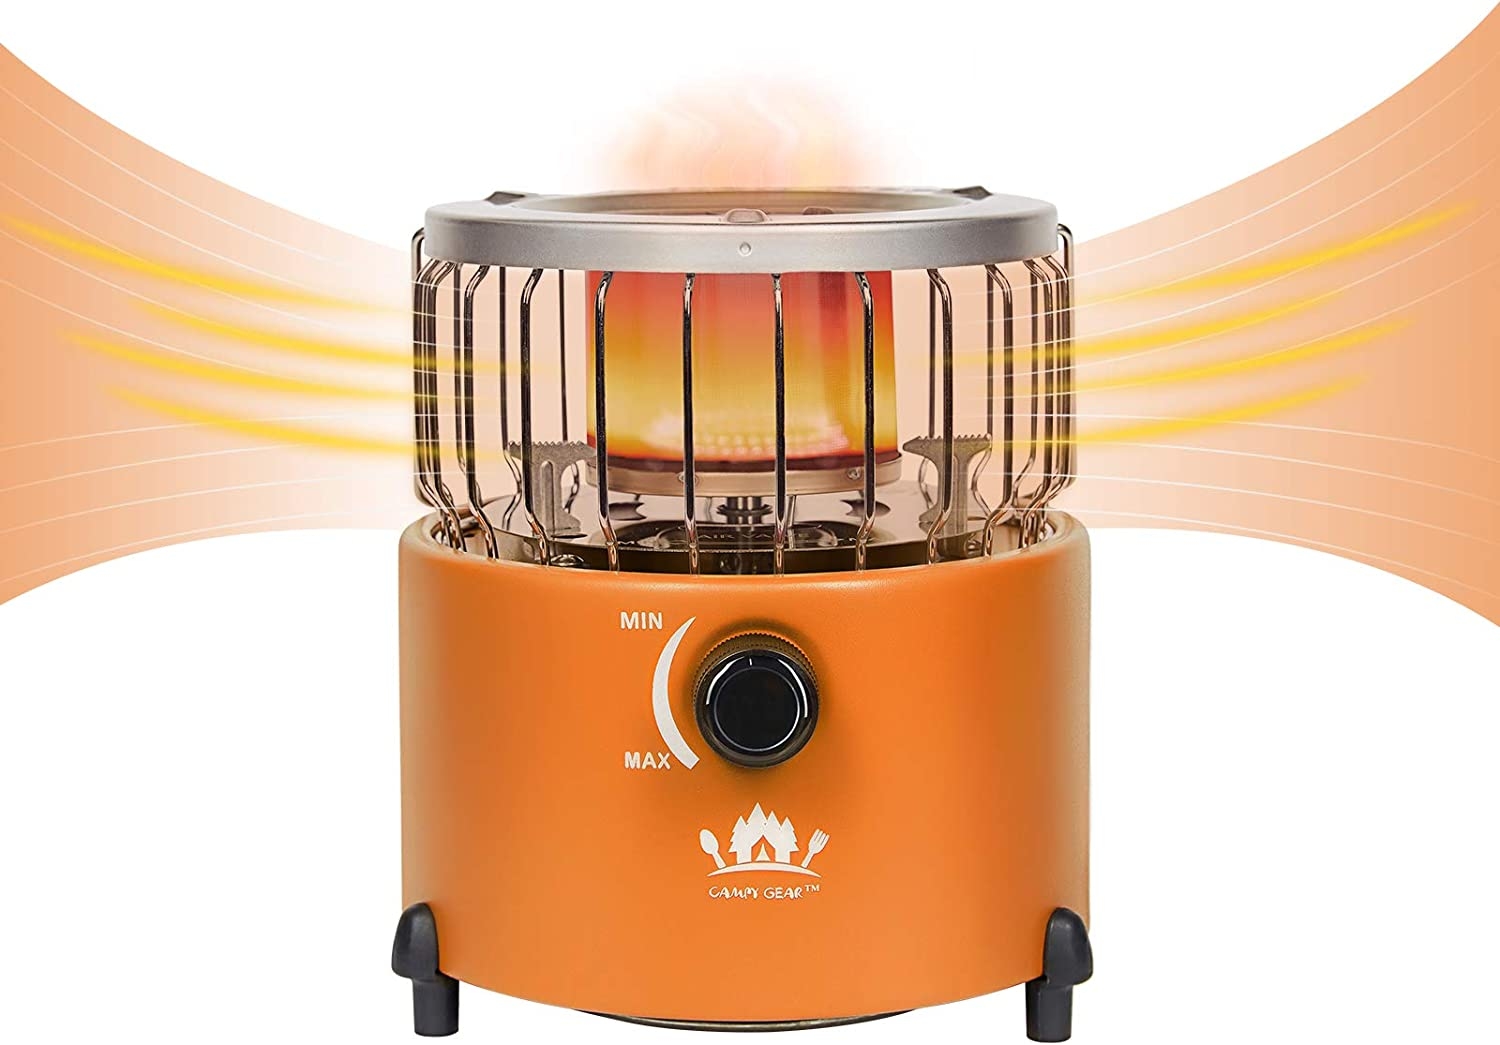 Campy Gear 2 in 1 Portable Propane Heater & Stove, Outdoor Camping Gas Stove Camp Tent Heater for Ice Fishing Backpacking Hiking Hunting Survival Emergency (Orange, CG-2000G)